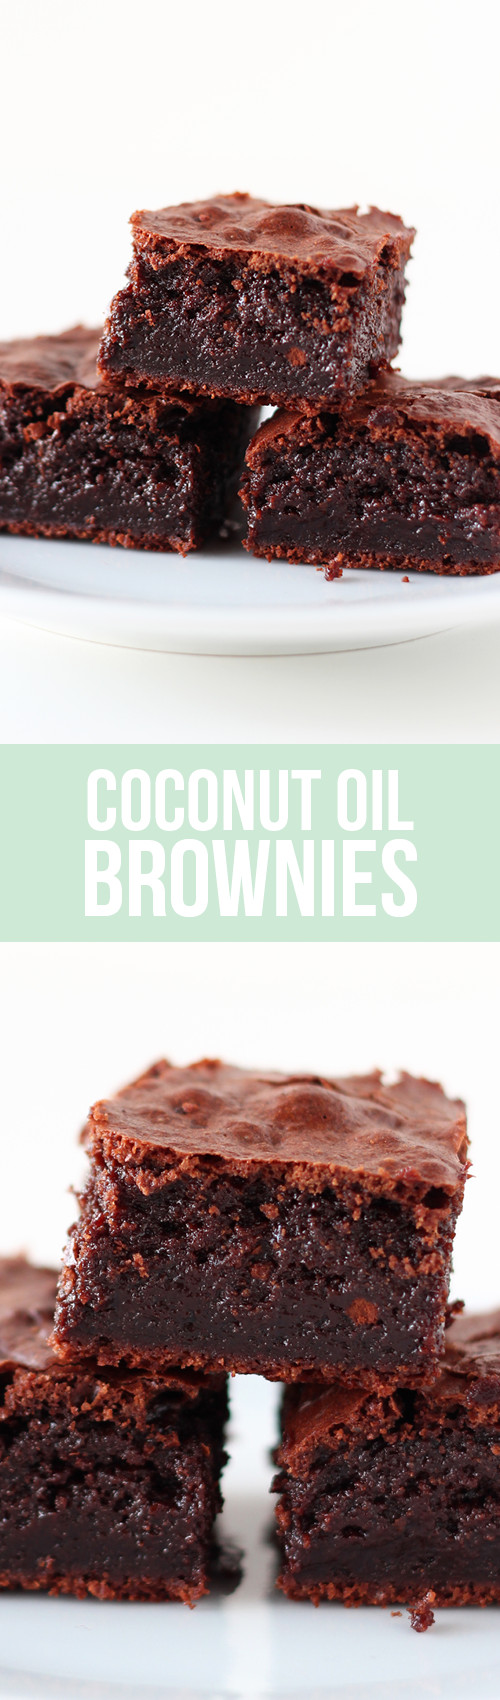 Substitute For Vegetable Oil In Brownies  i don t have ve able oil for brownies